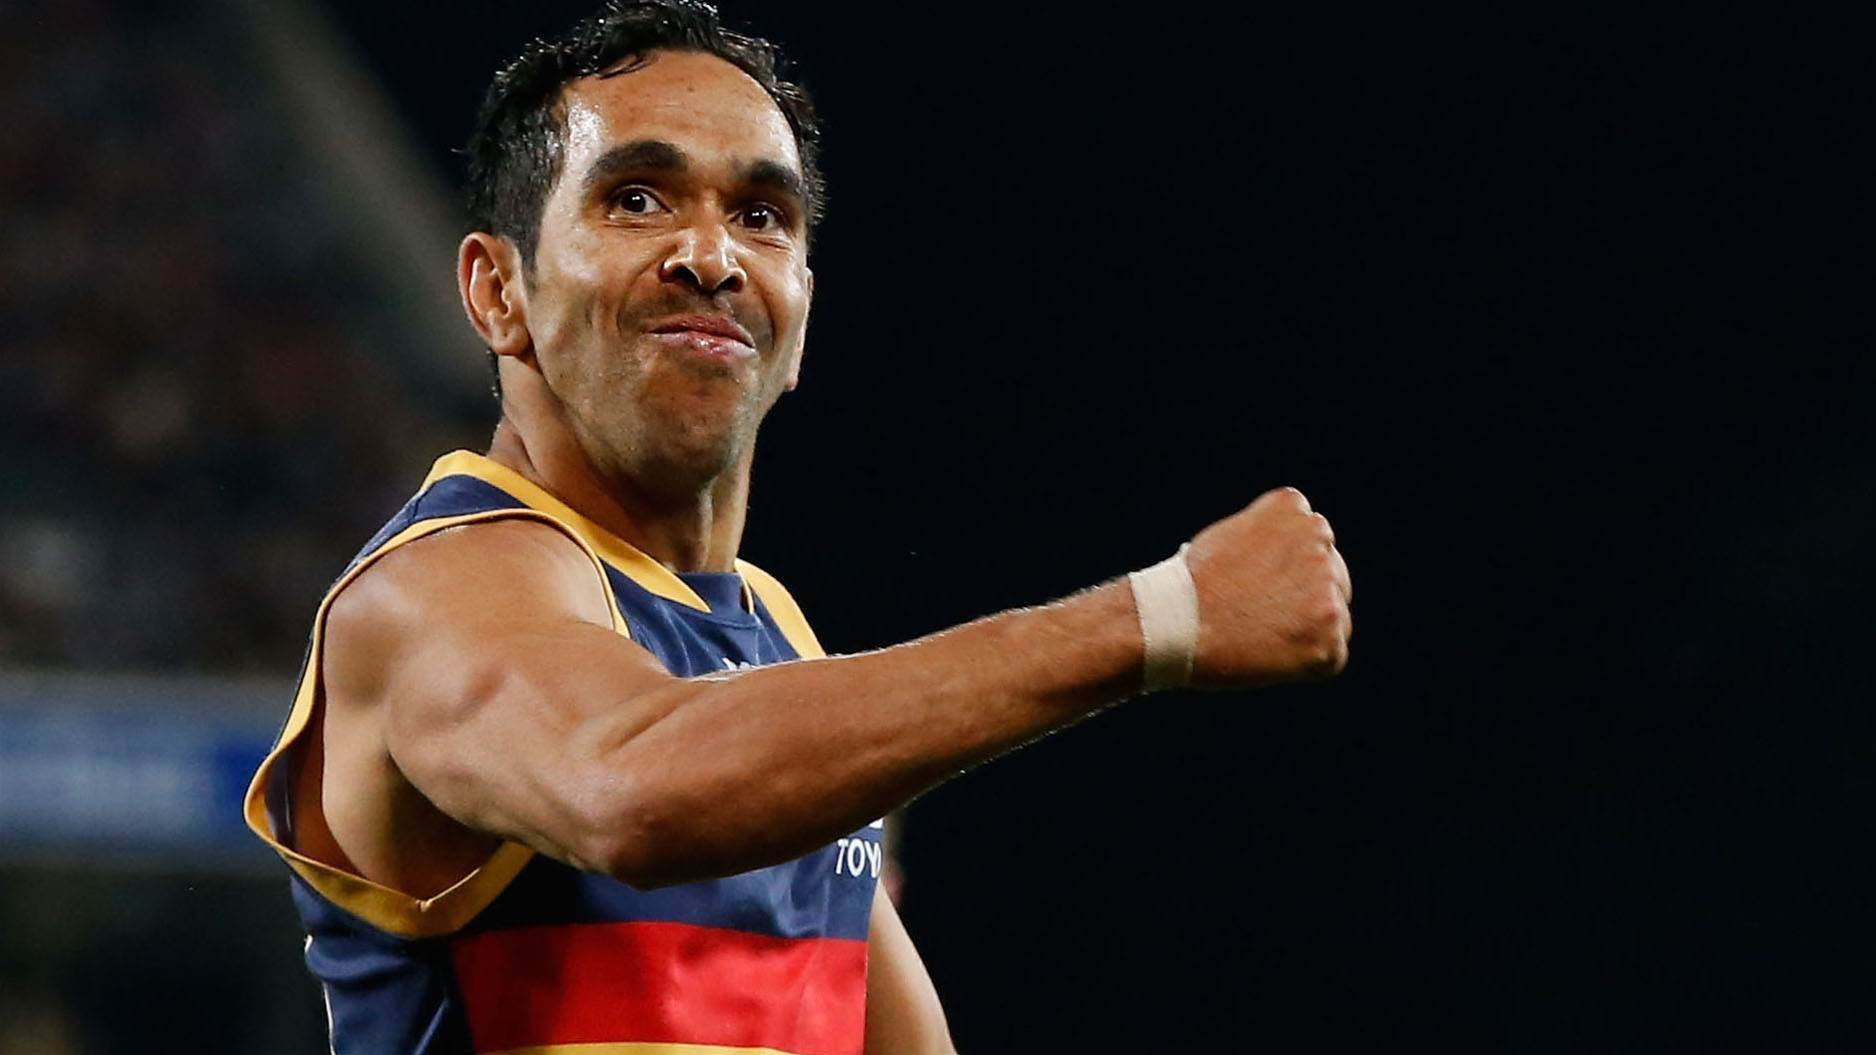 Betts to finish career at Crows